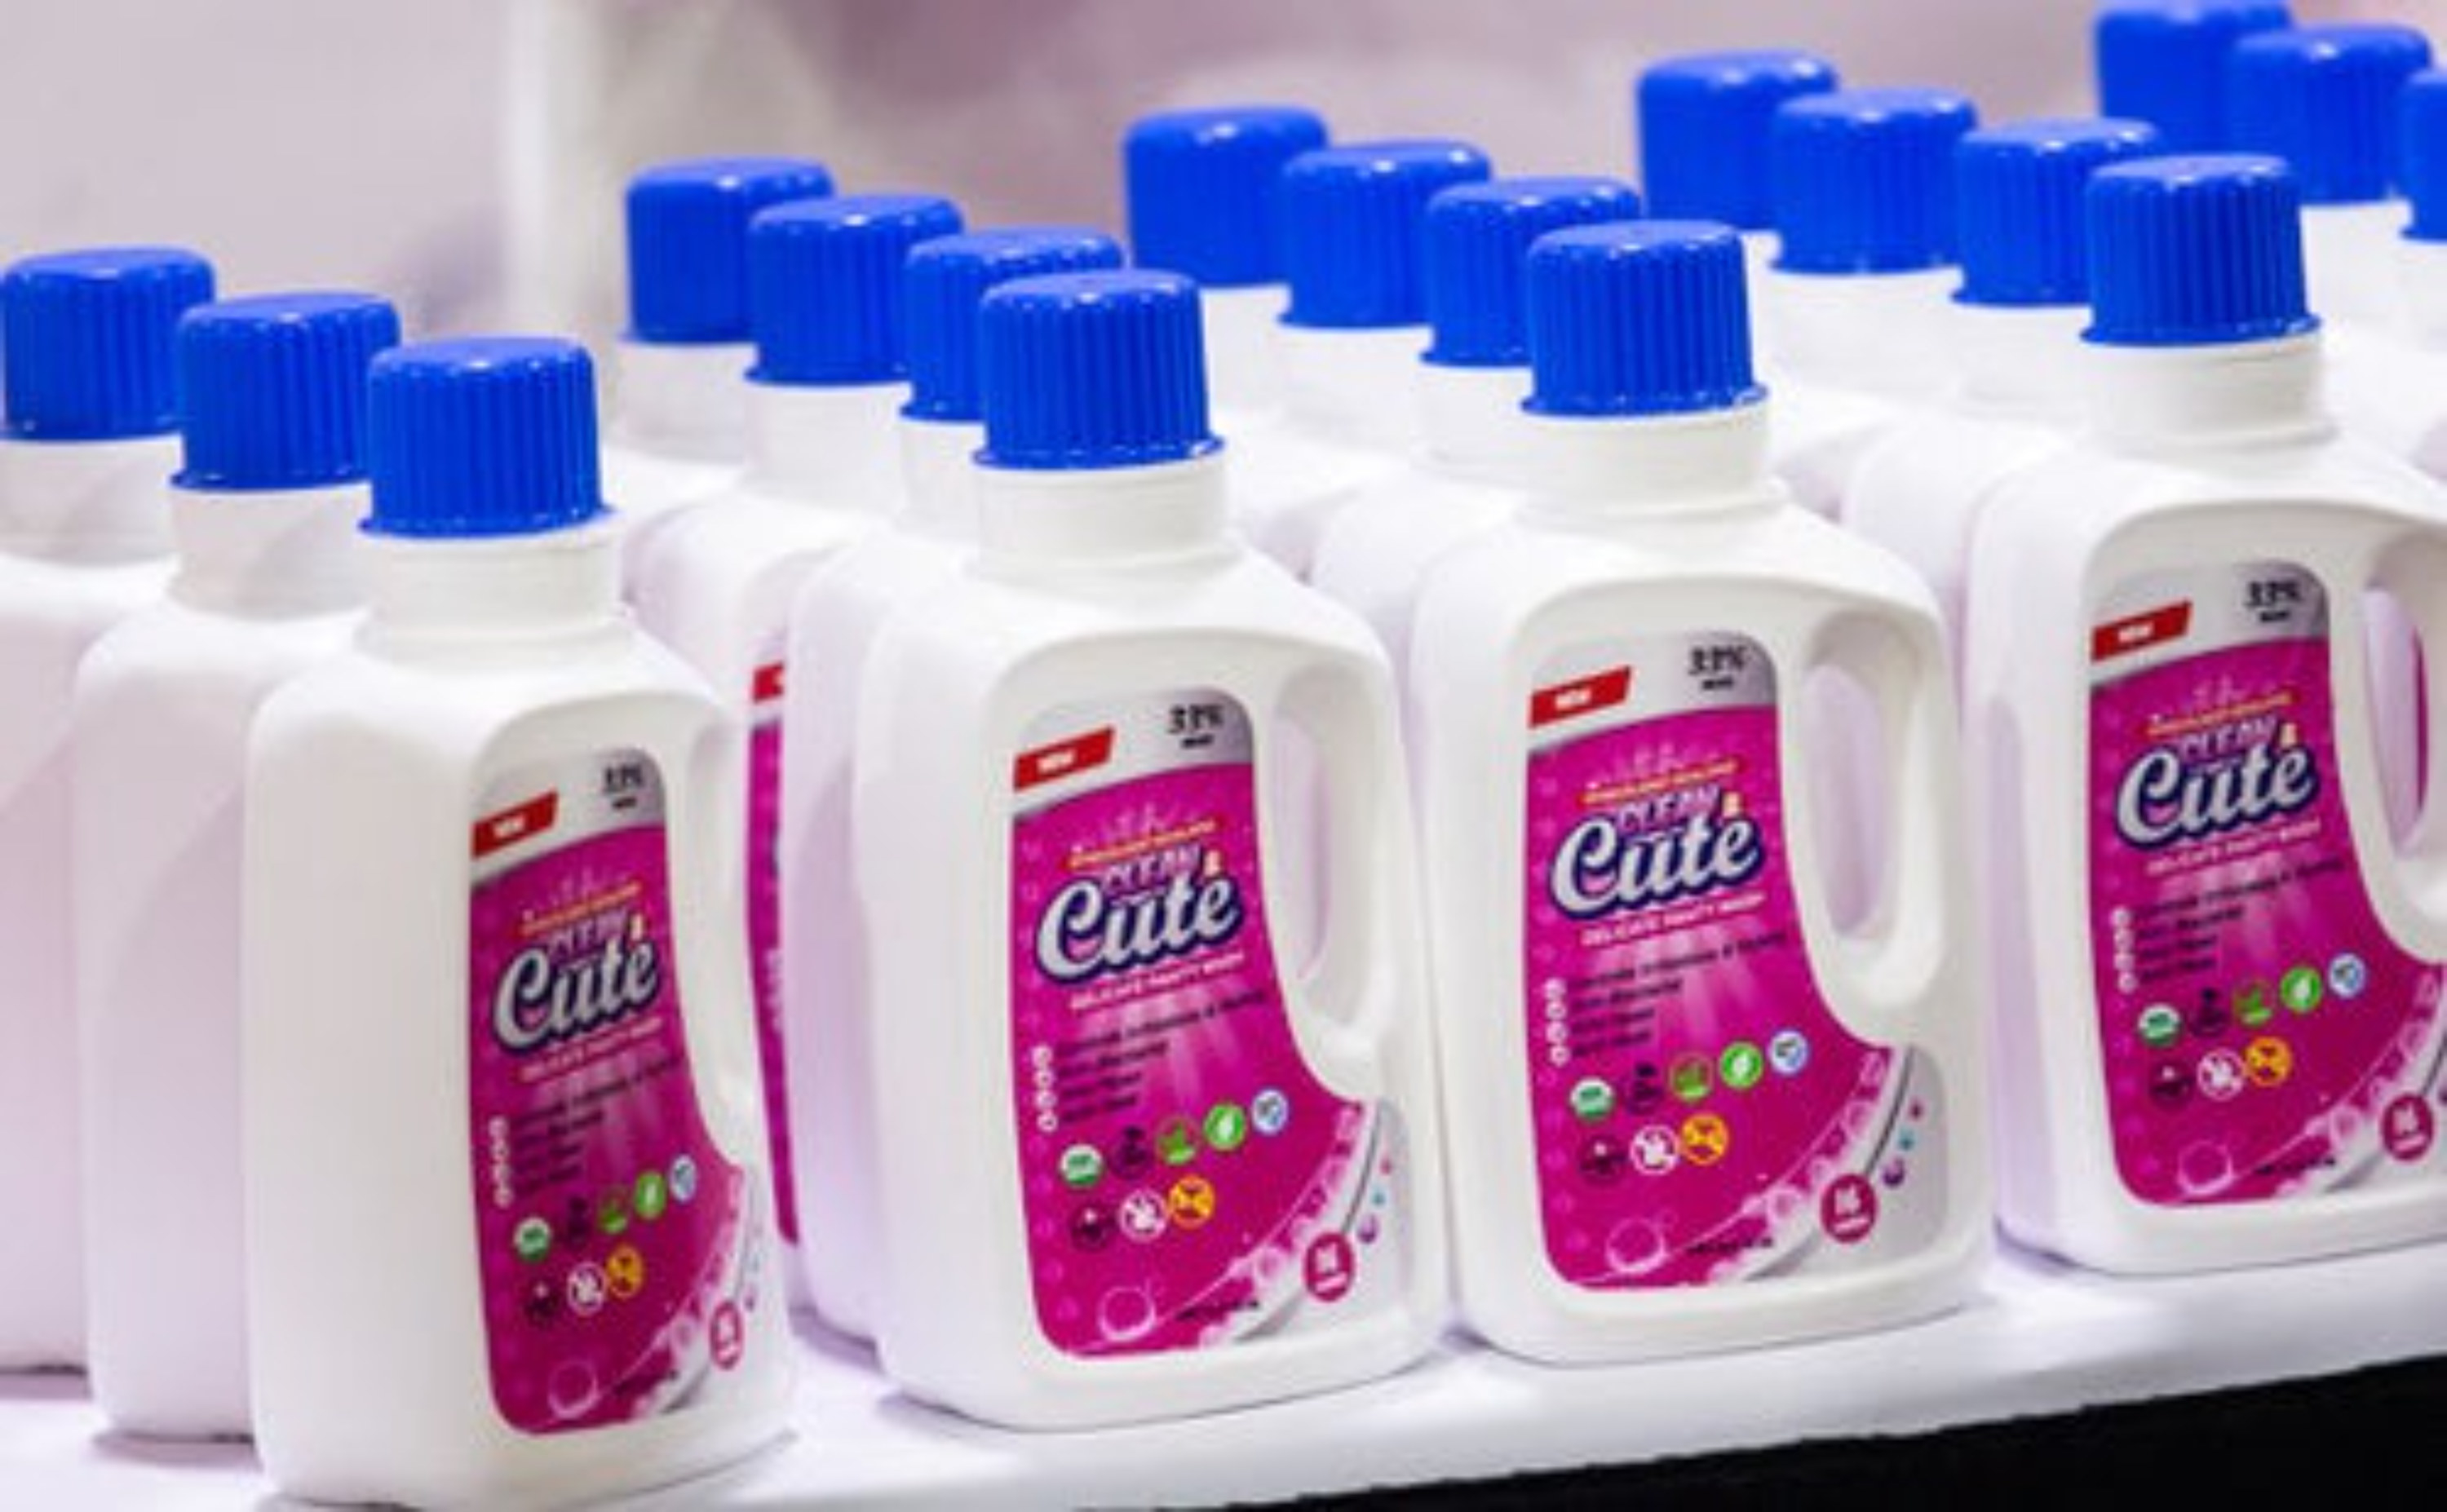 Bottles of the detergent